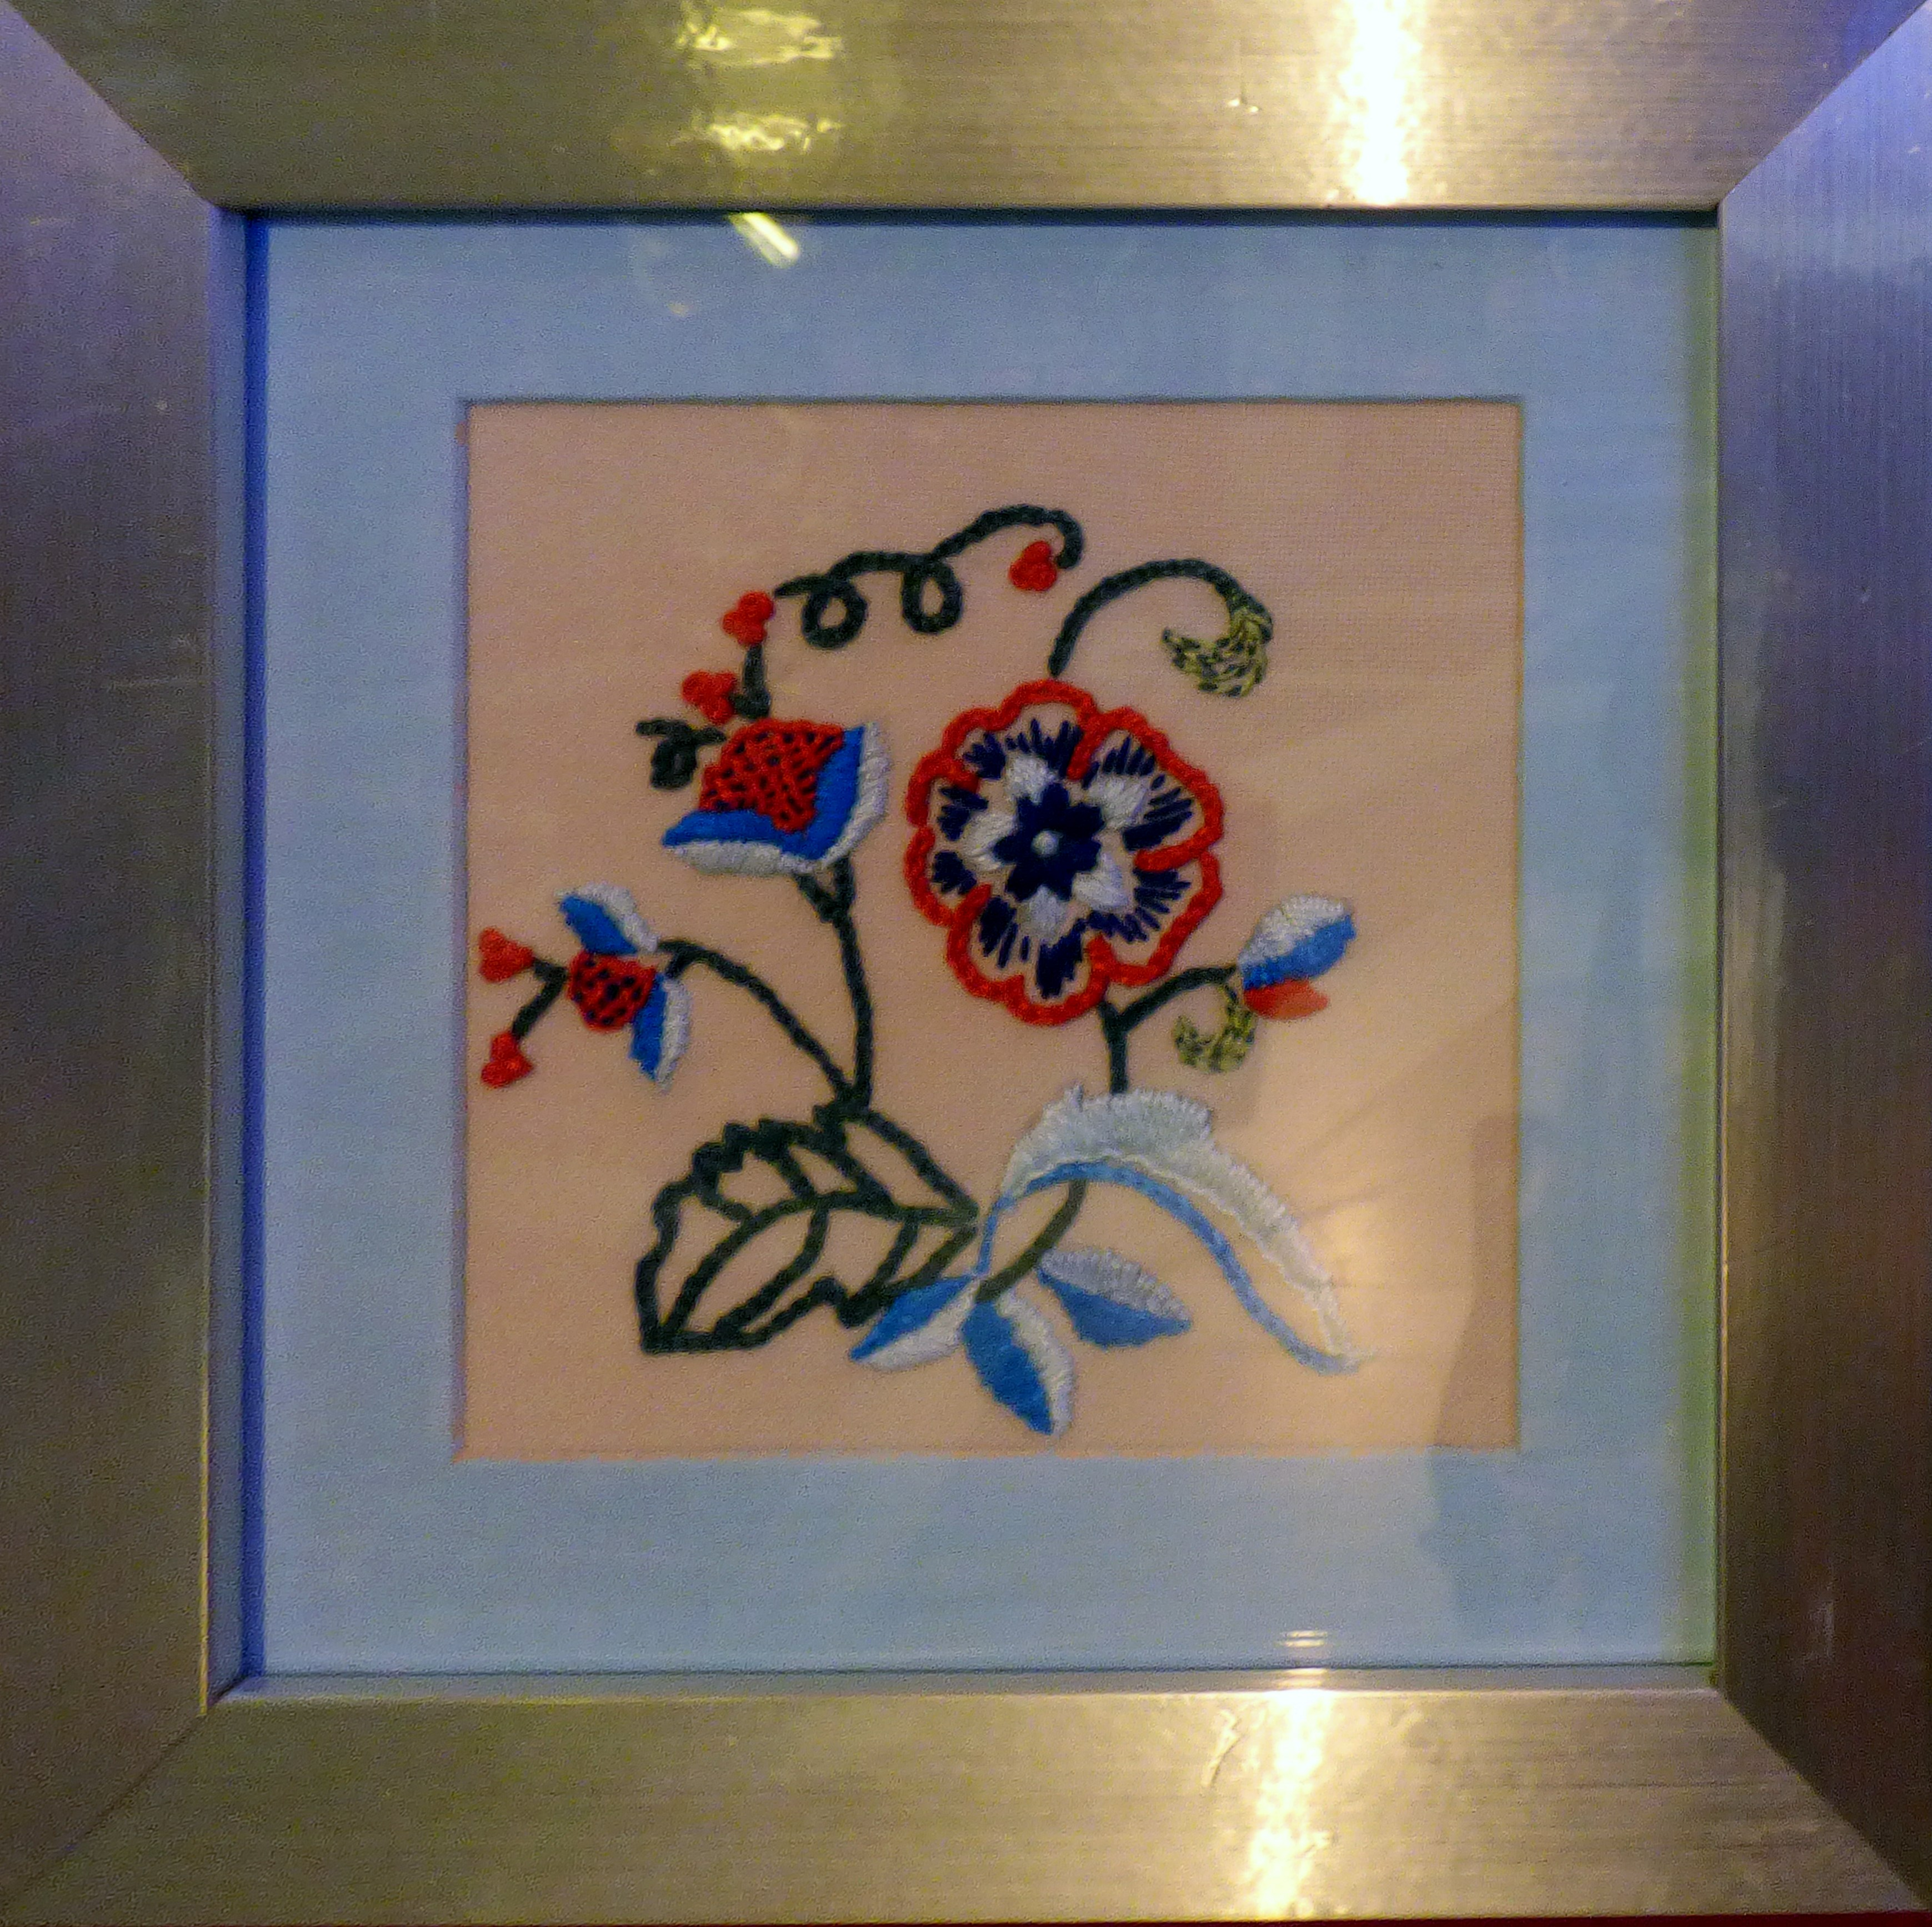 CREWELWORK by K.Green, at Embroidery for Pleasure exhibition, Liverpool Metropolitan Cathedral 2016